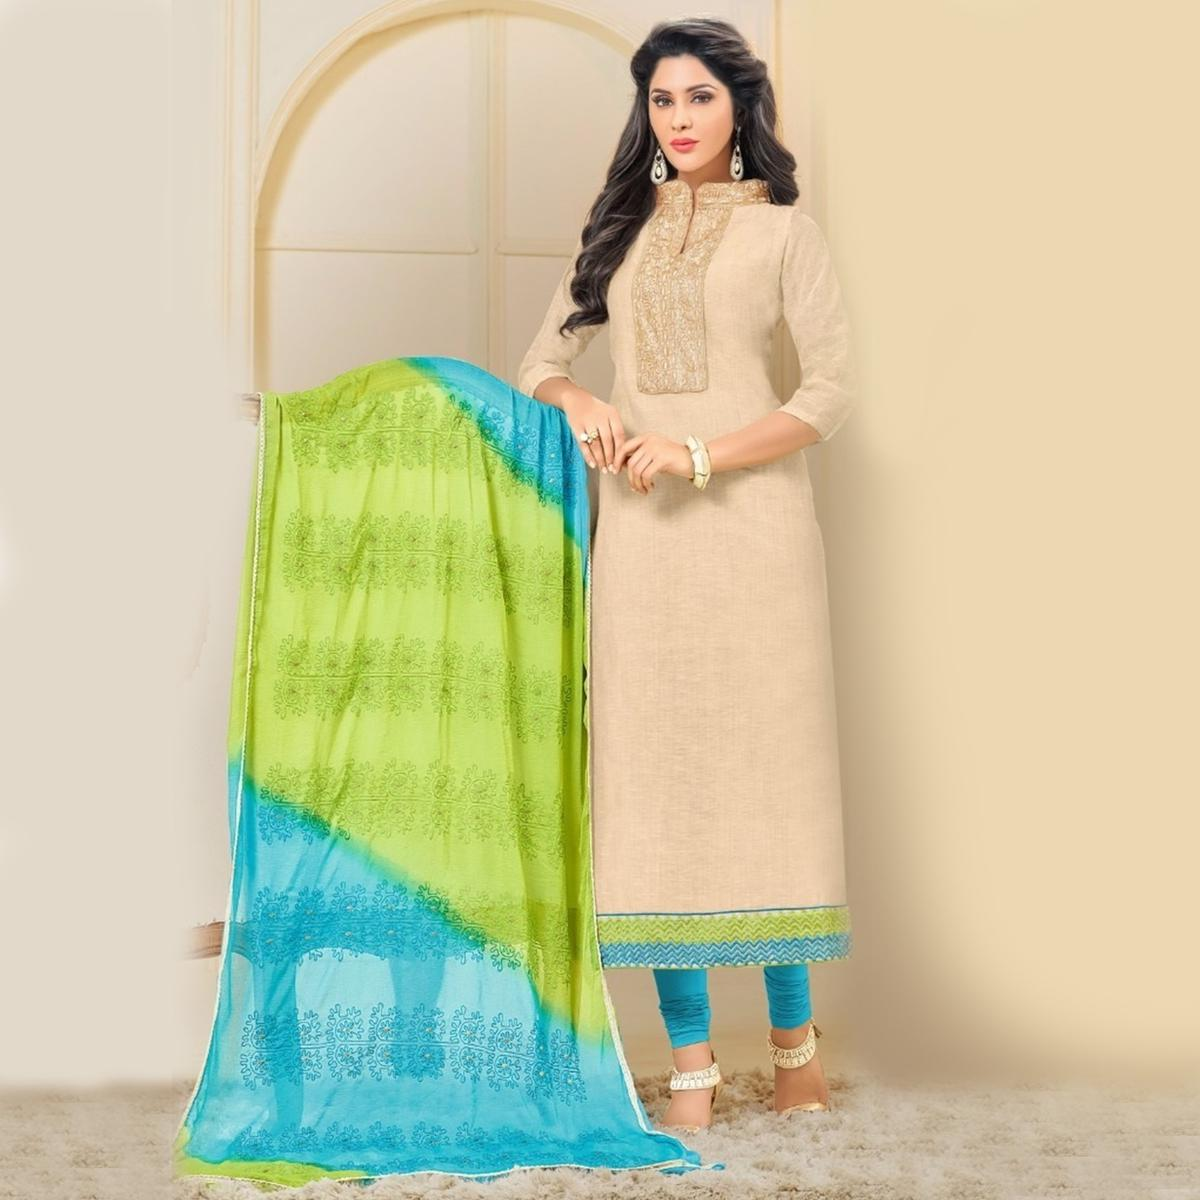 Elegant Chiku and Blue Embroidered Semi Stitched Salwar Suit